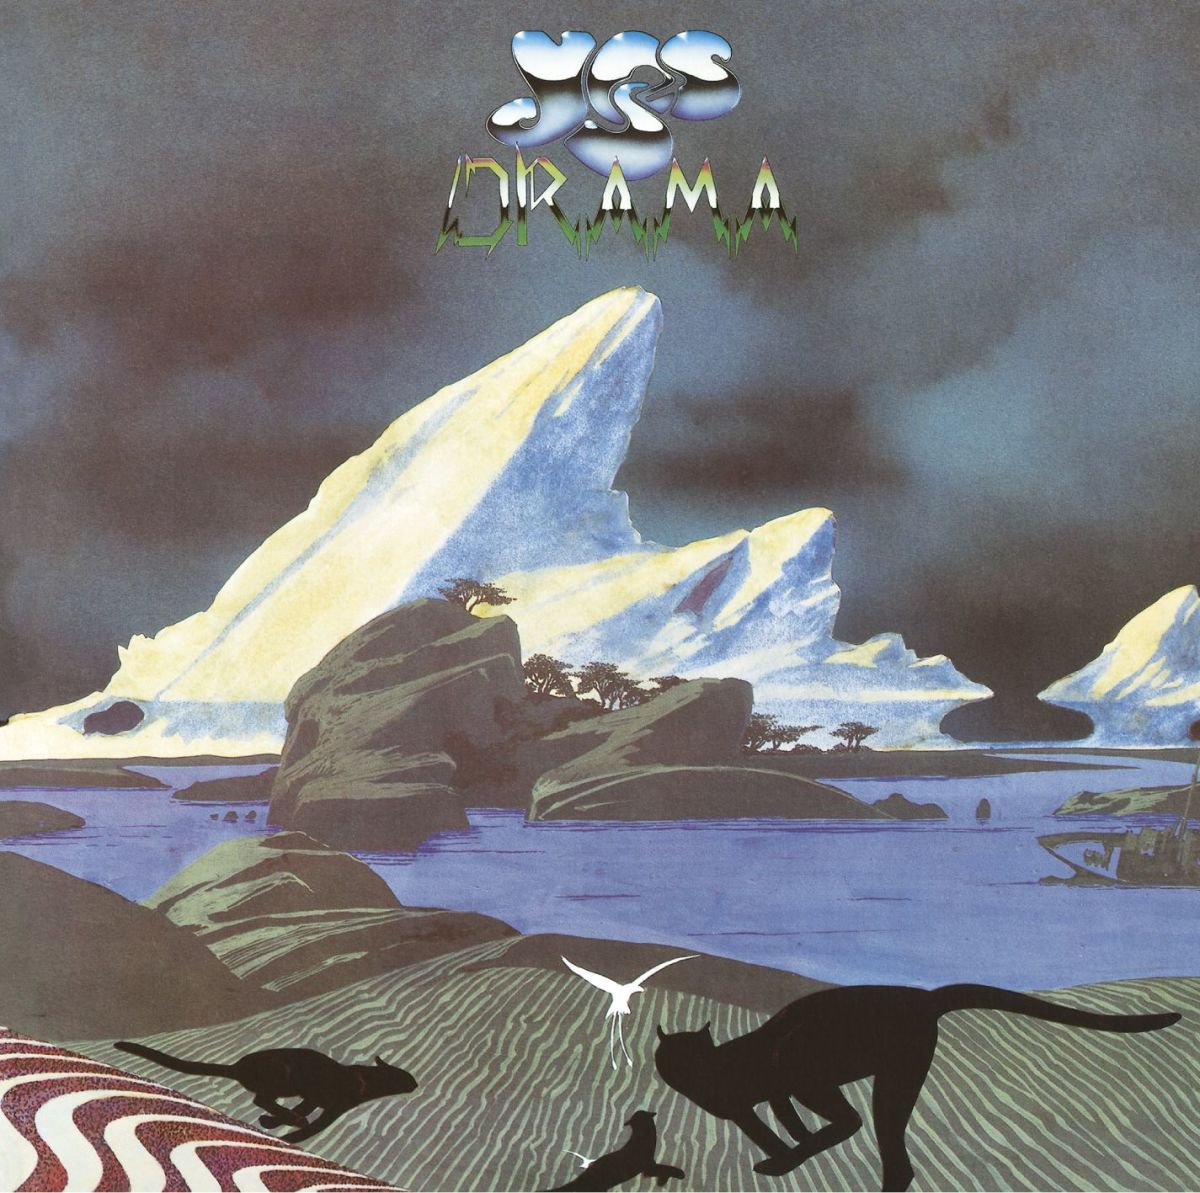 "Yes ""Drama"" Atlantic Records K 50736 12"" LP Vinyl Record, UK Pressing (1980) Album Cover Art & Design by Roger Dean"